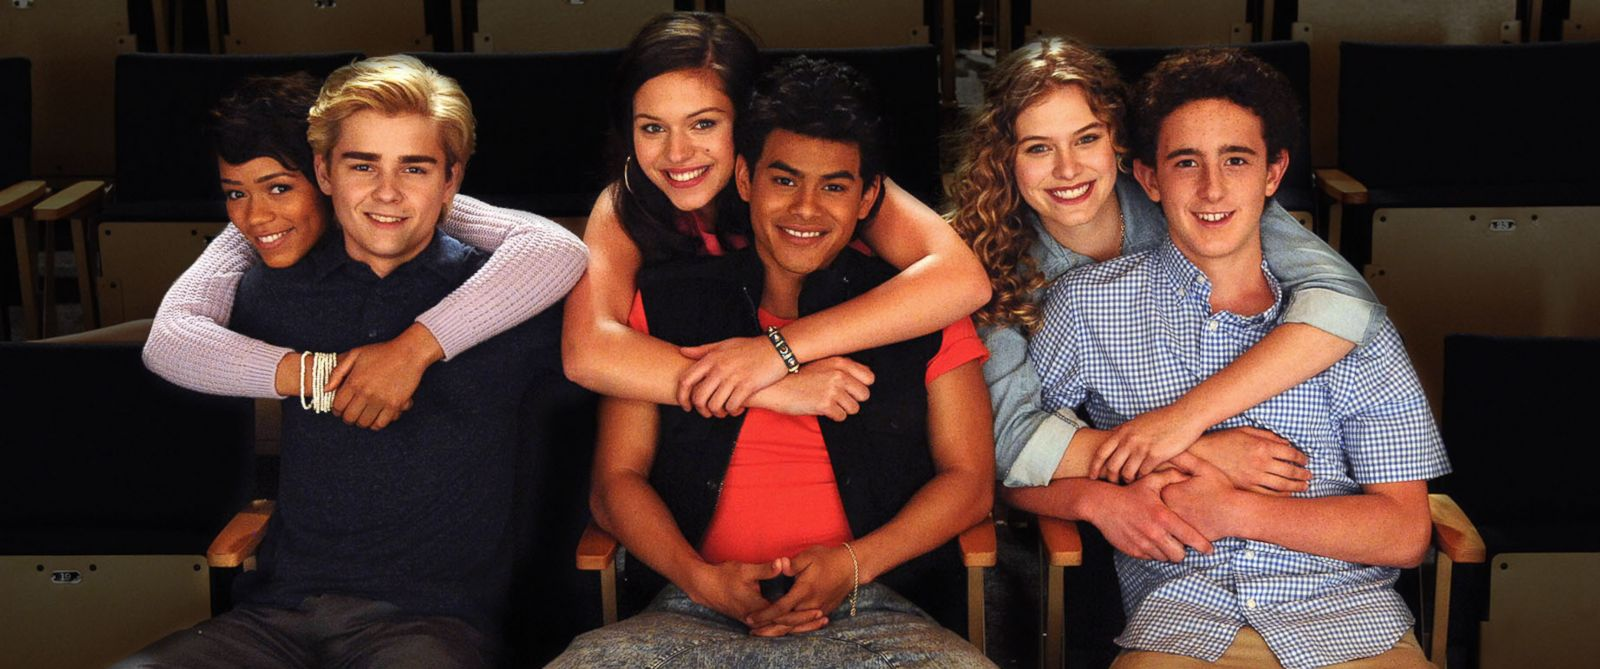 "PHOTO: Sam Kindseth, Taylor Russell McKenzie, Dylan Everett, Julian Works, Alyssa Lynch and Tiera Skovbye and star in Lifetime's all-new original movie, ""The Unauthorized Saved by the Bell Story"" airing on Sept. 1, 2014."